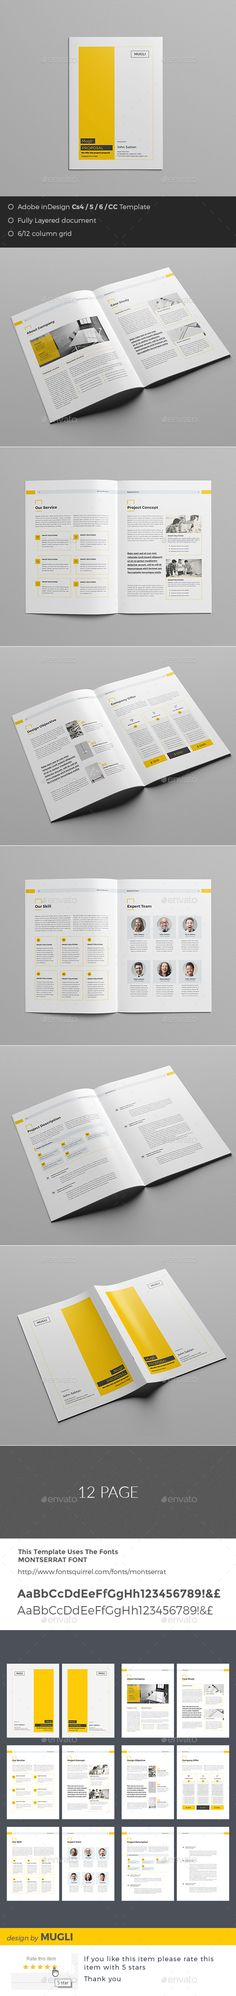 proposal proposal brochure template indesign corporate templates